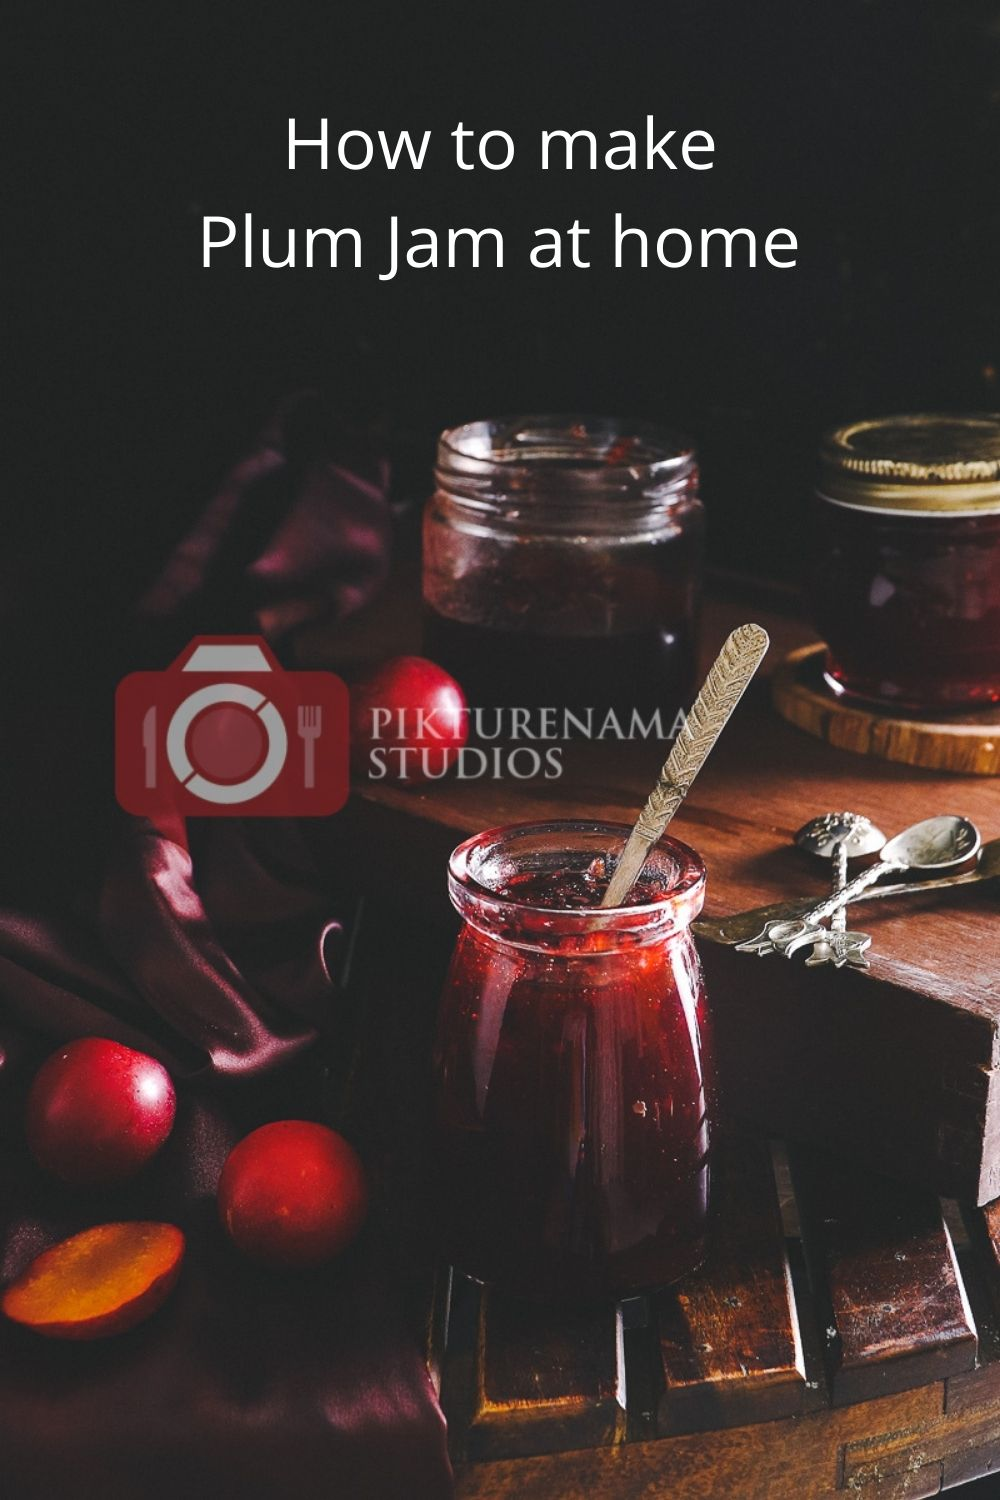 Easyway to make Plum Jam at home for Pinterest - 1